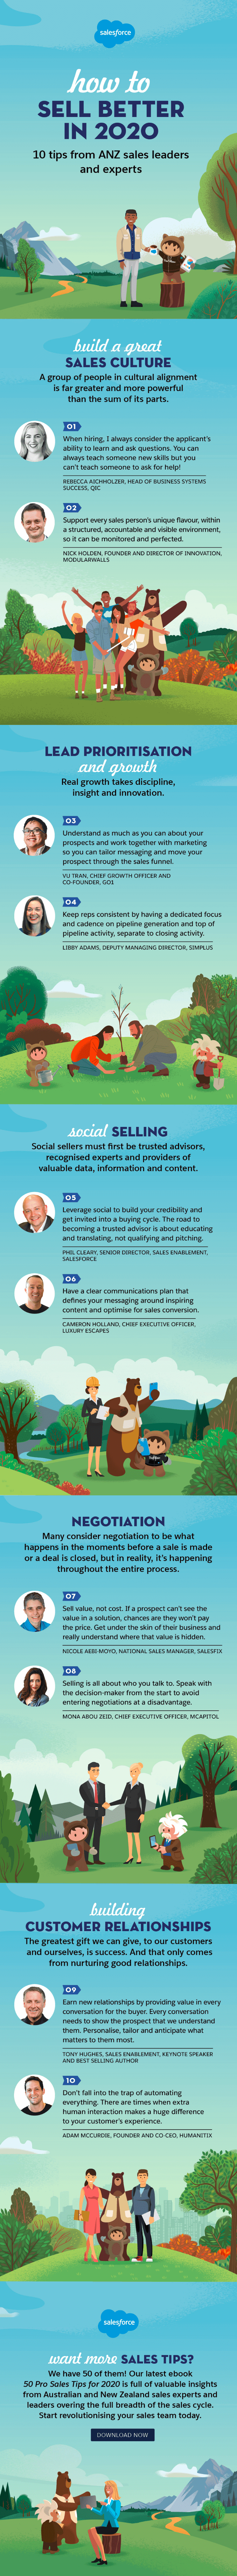 How To Sell Better in 2020 | Tips From Salesforce Leaders